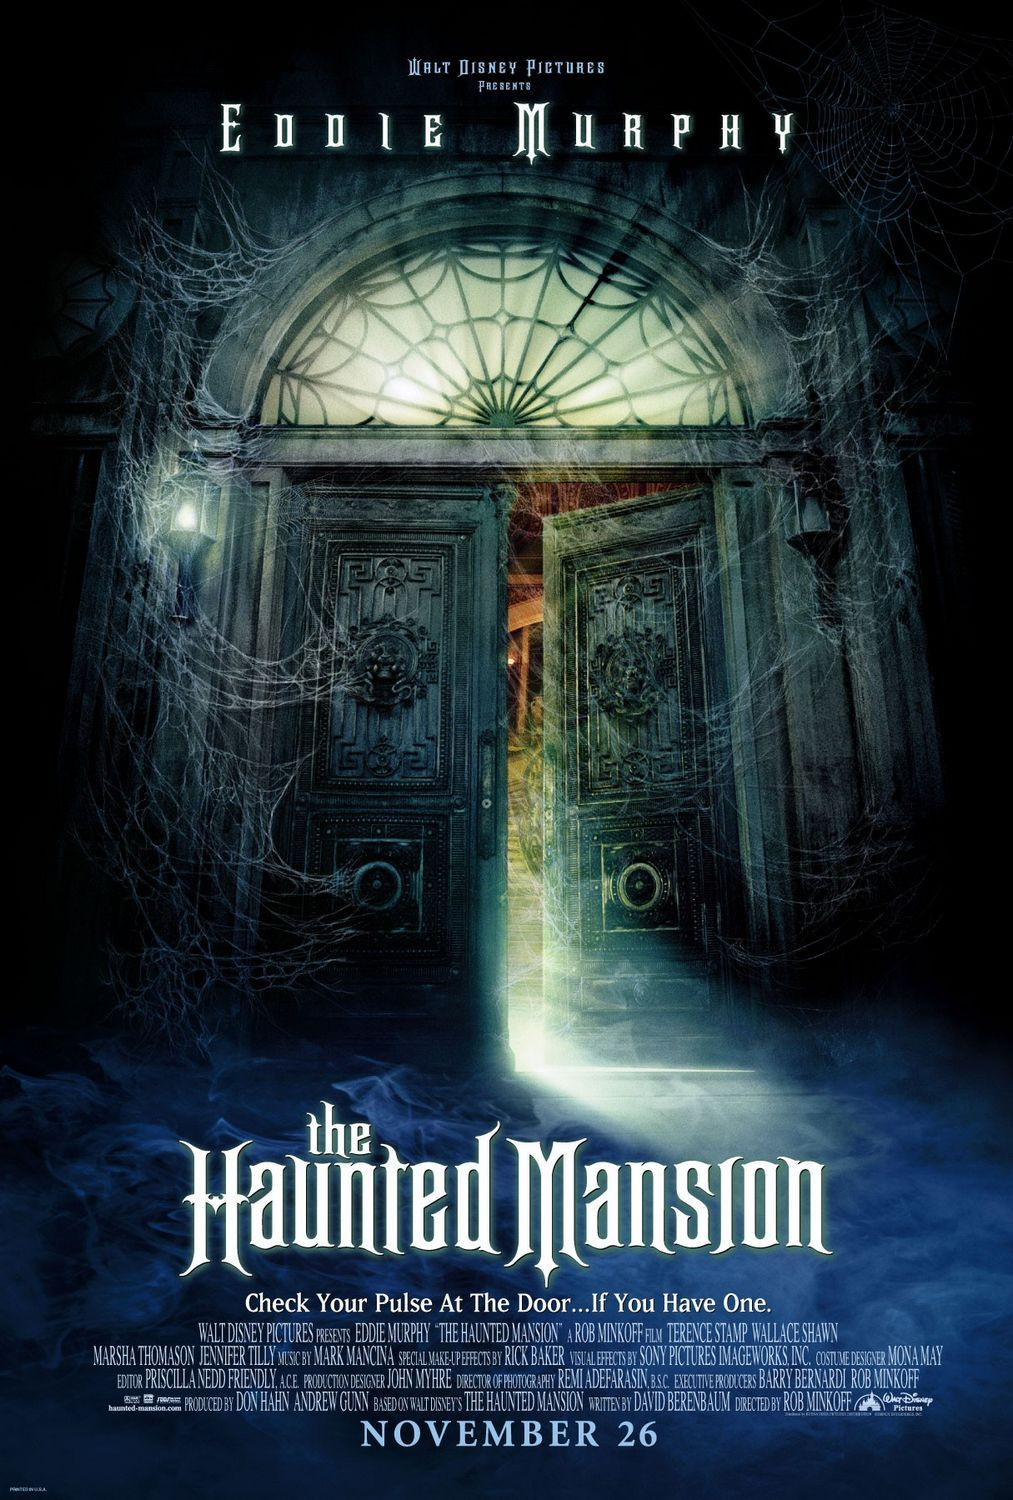 The Haunted Mansion Extra Large Movie Poster Image Internet Movie Poster Awards Gallery Haunted Mansion Family Movies Halloween Movies